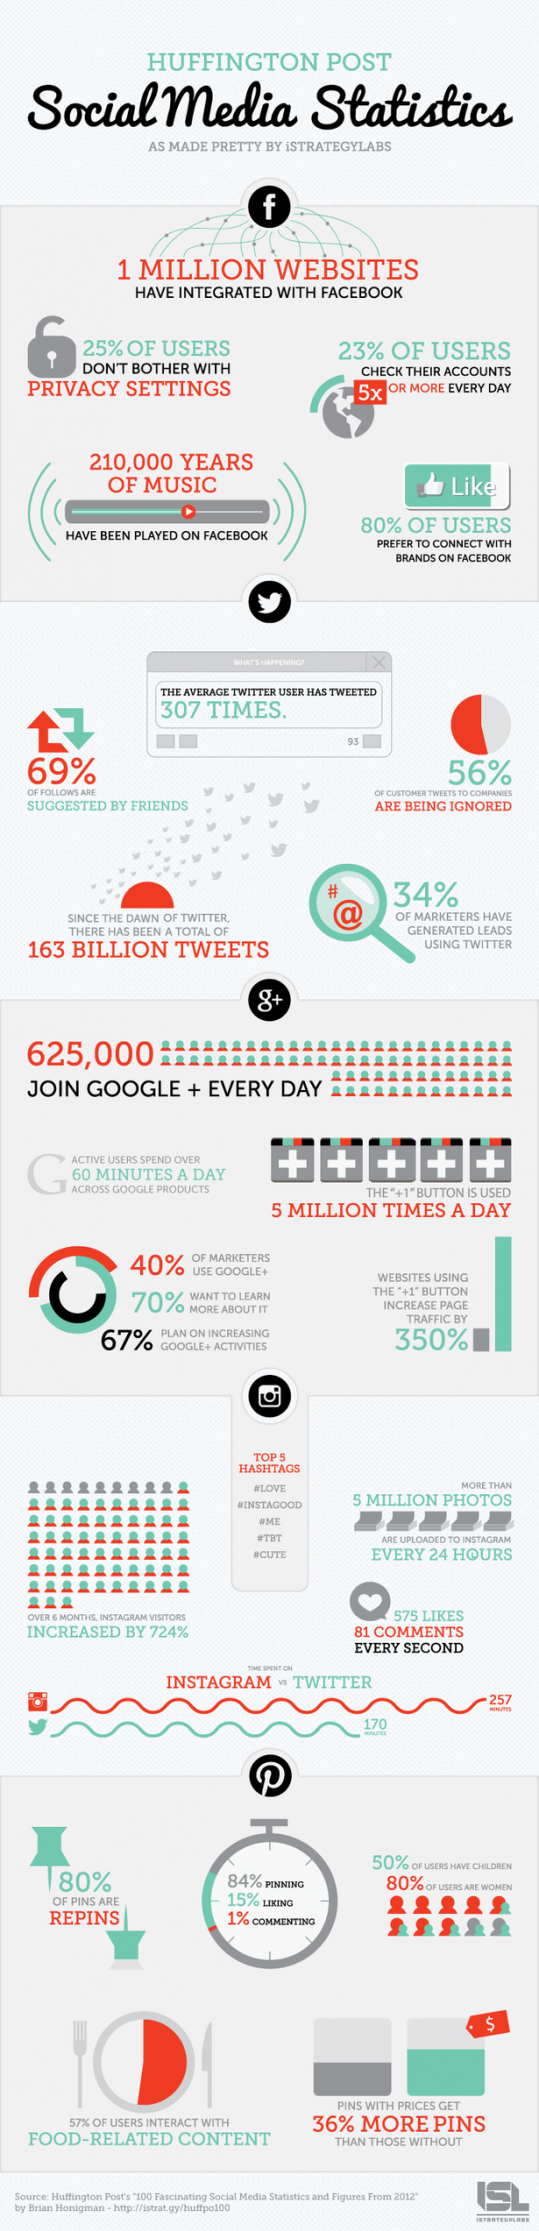 social_media_infographic_2012-stats